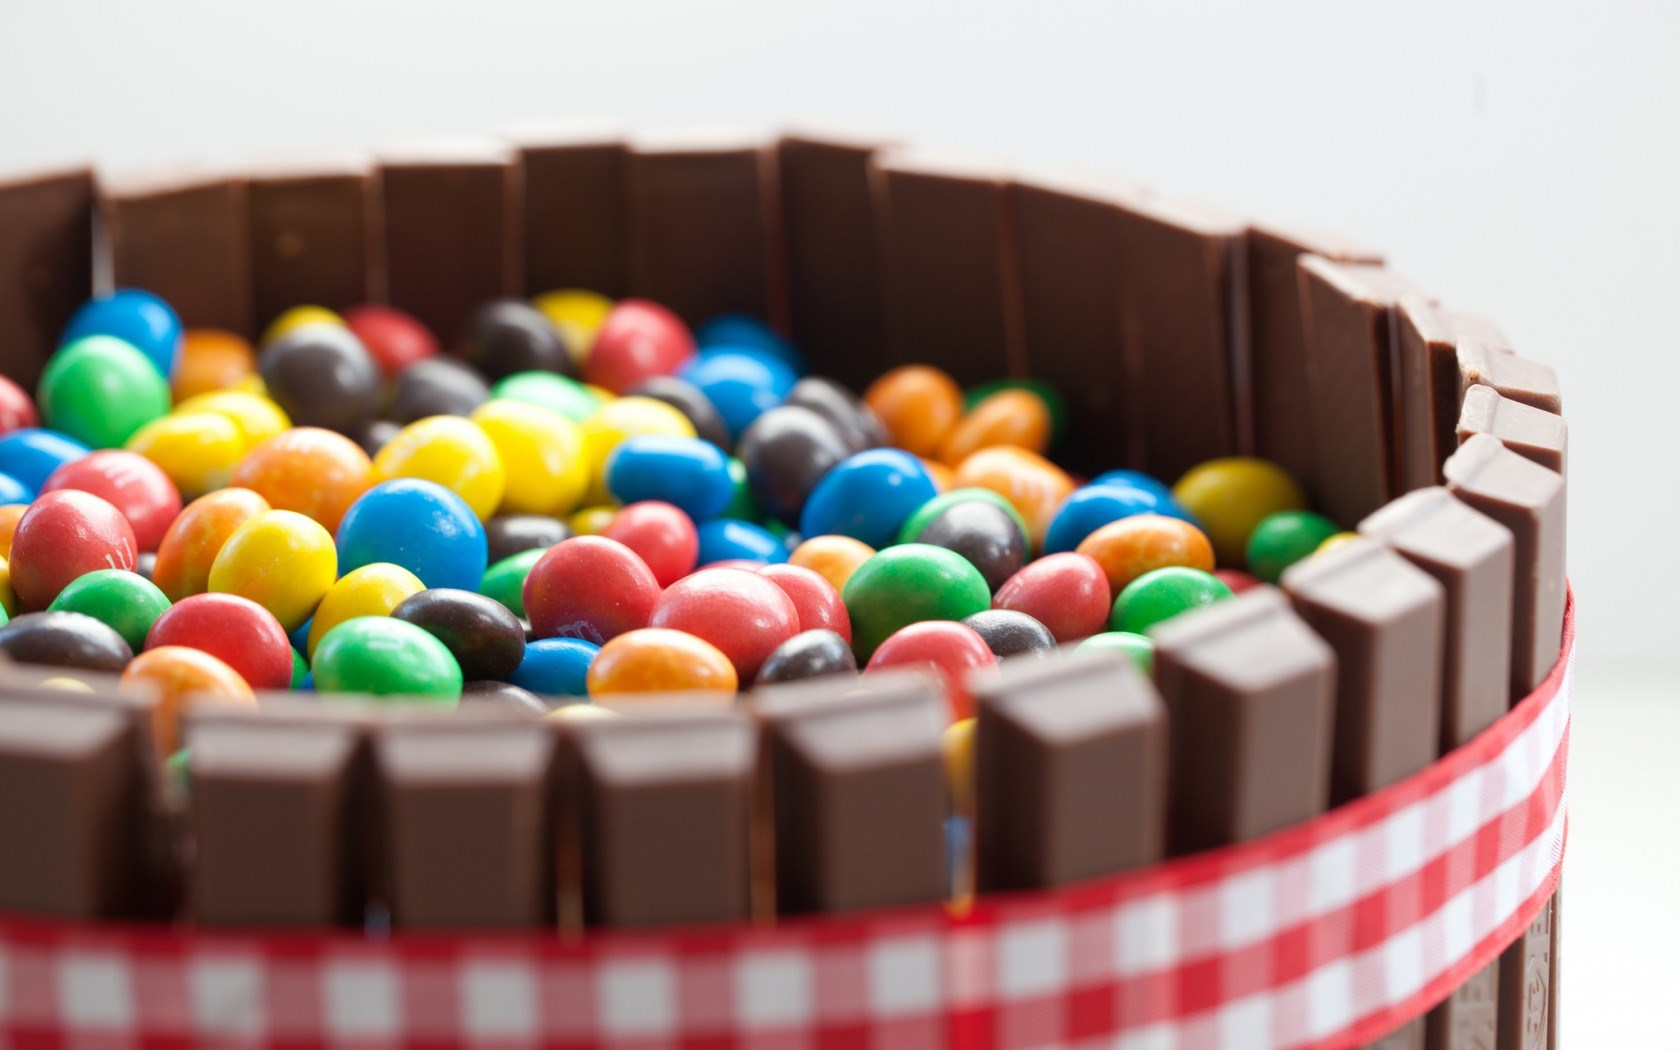 Chocolate Candy Colorful Basket